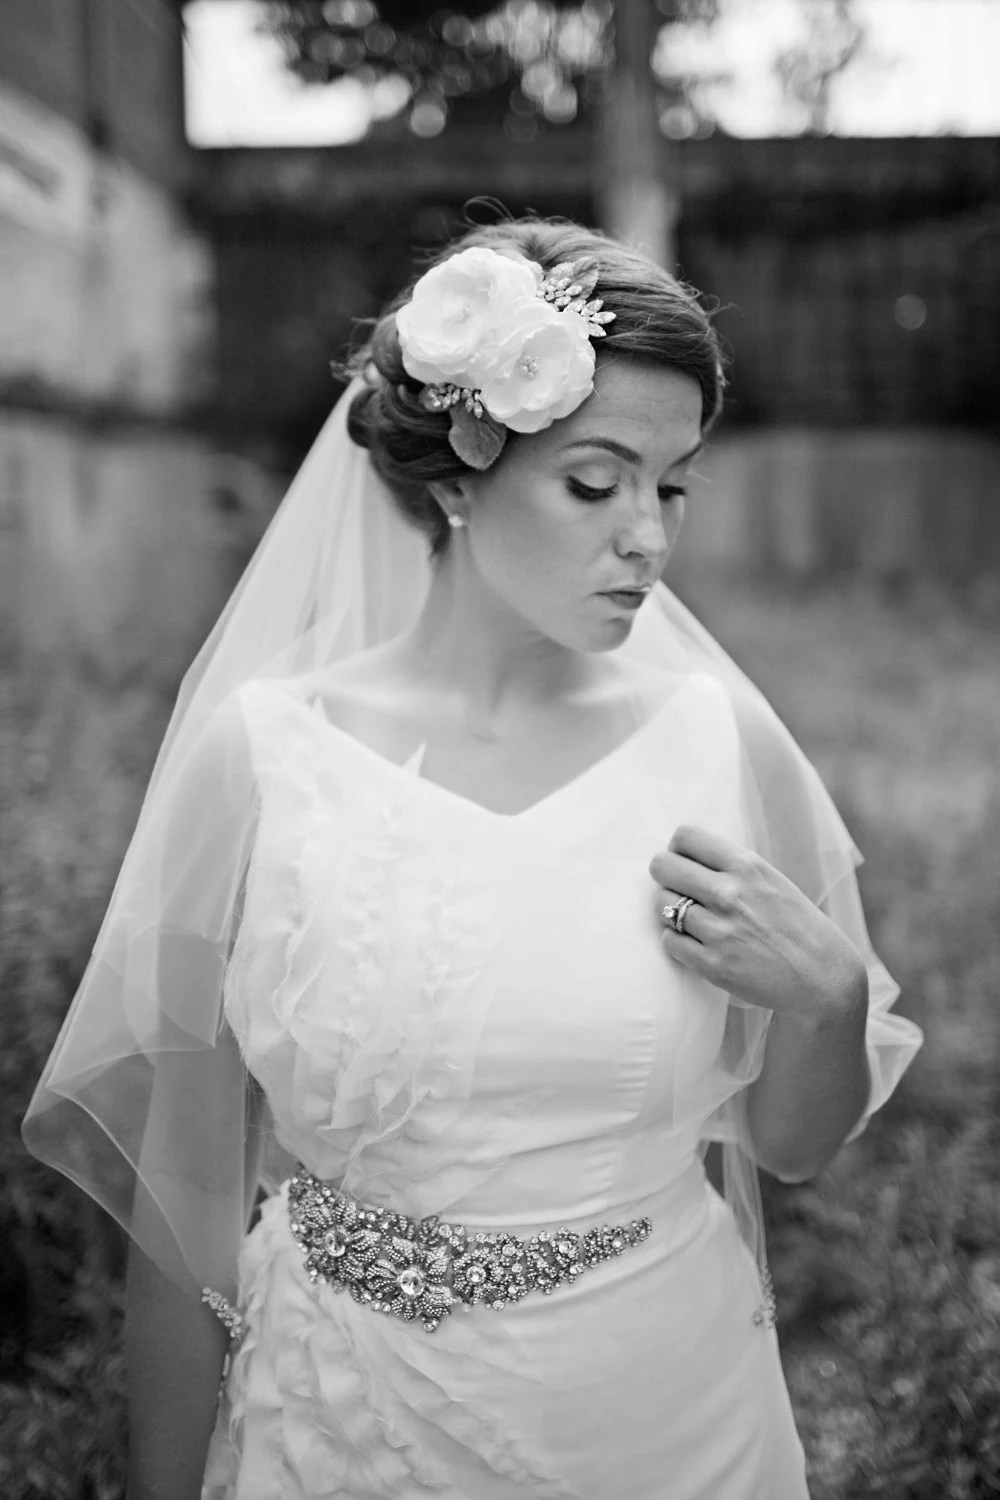 Single Layer Elbow Length Tulle Veil with Swarovski Rhinestone Corners in Ivory or White